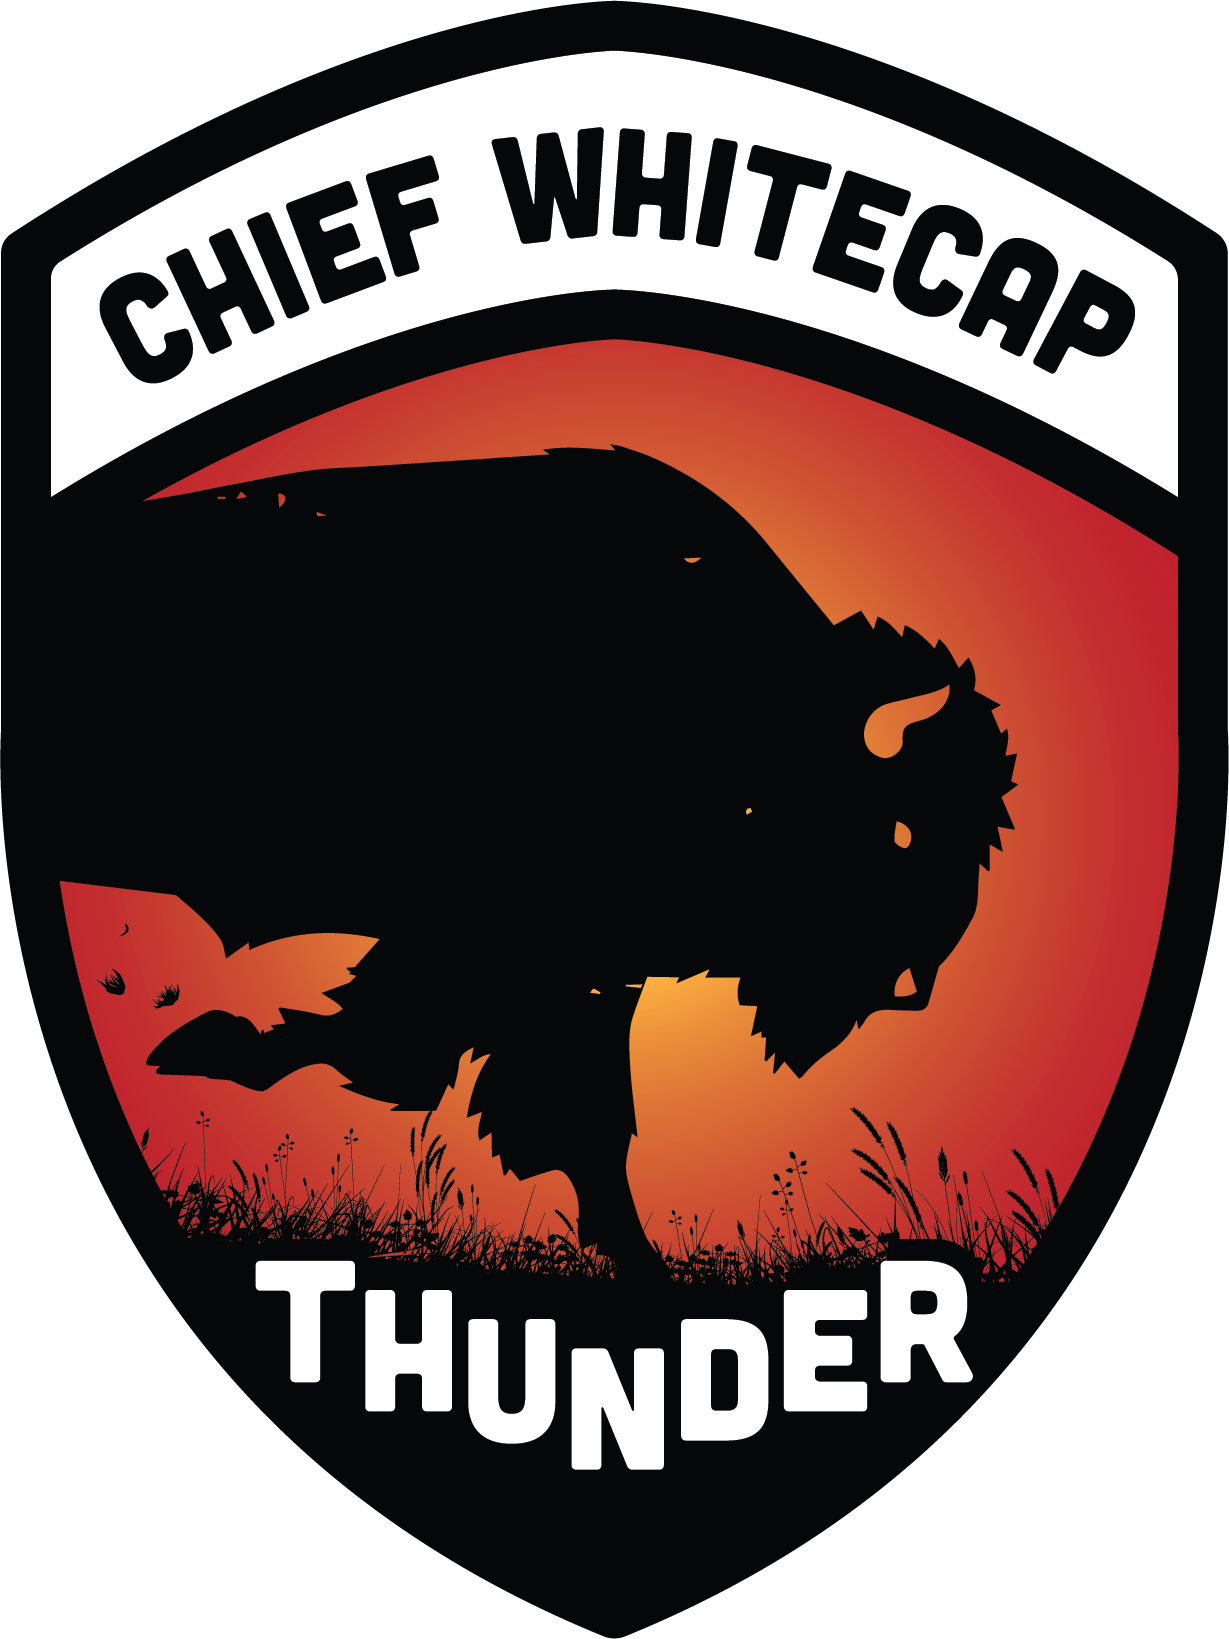 Chief Whitecap School logo